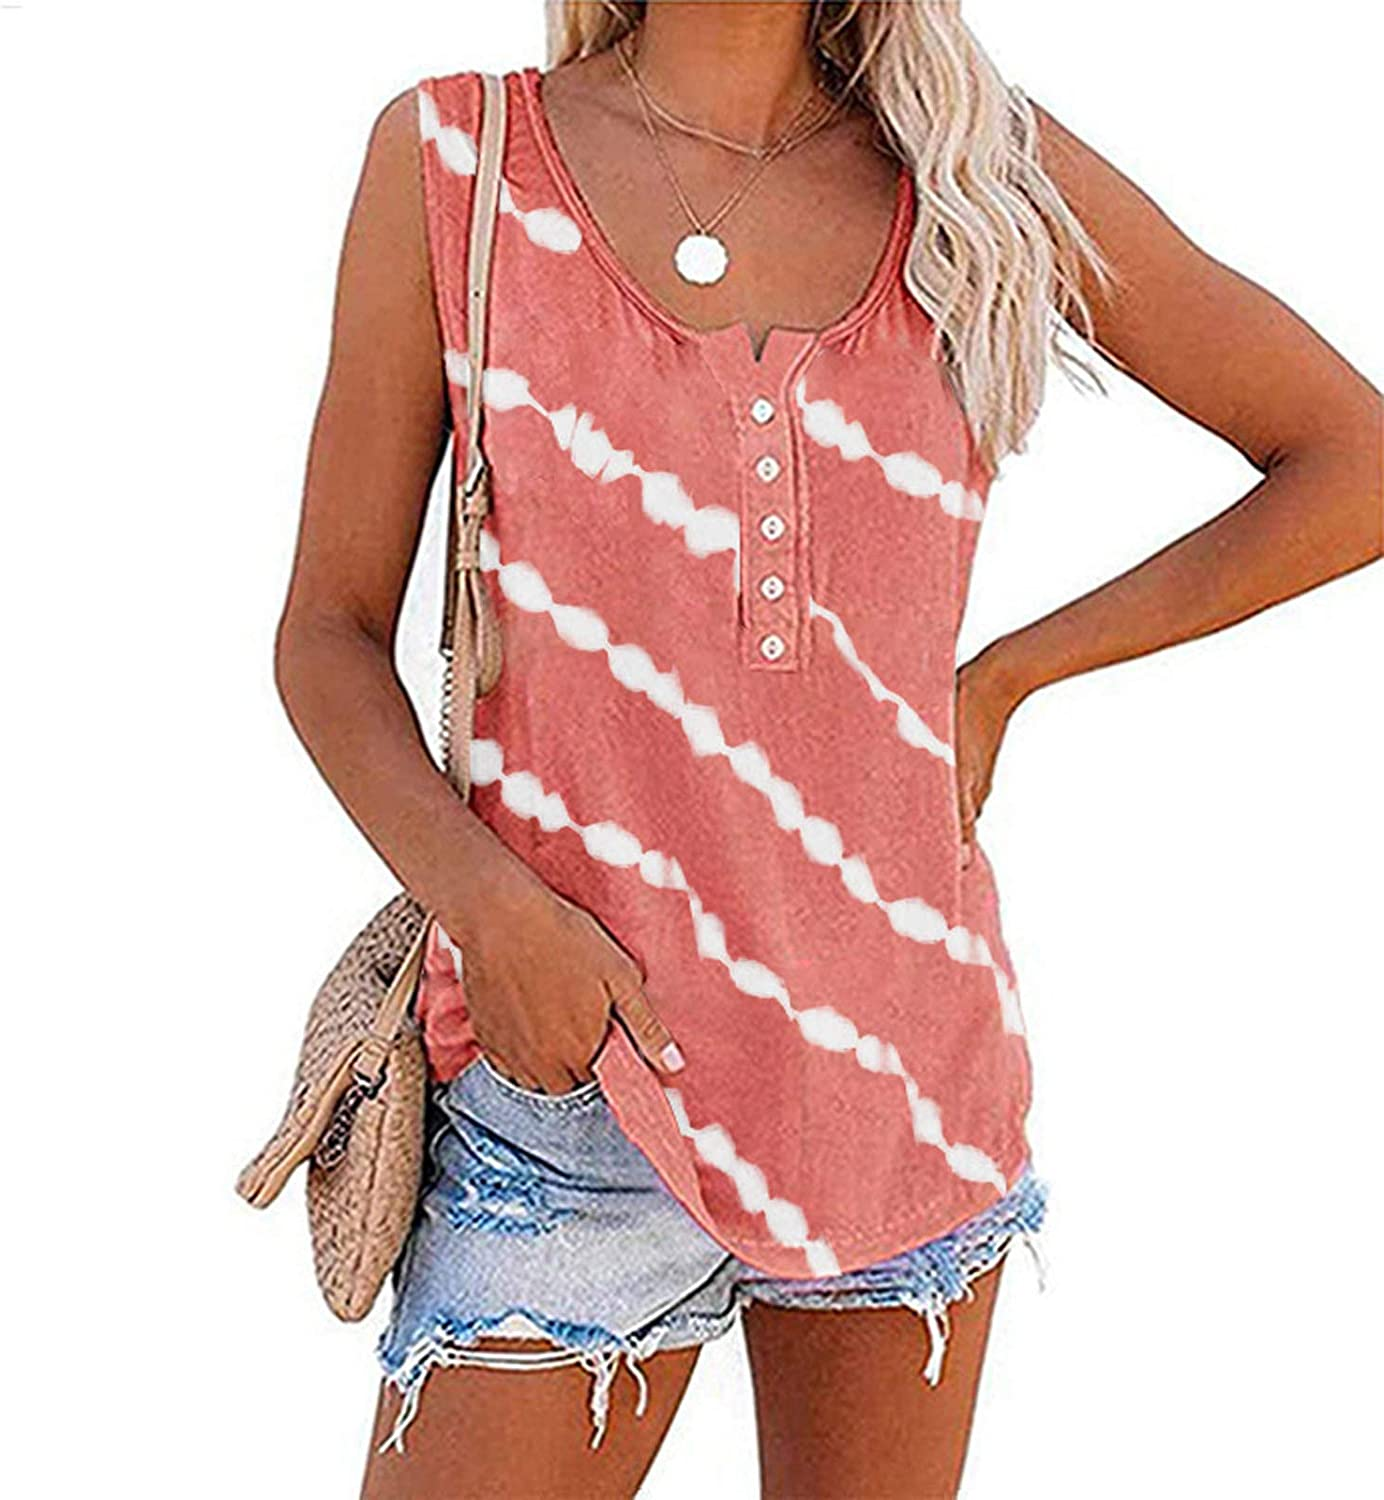 Summer Tops for Women, Womens Fashion Stripe V Neck Tank Top Sleeveless Vest T Shirts Casual Loose Tunic Blouses